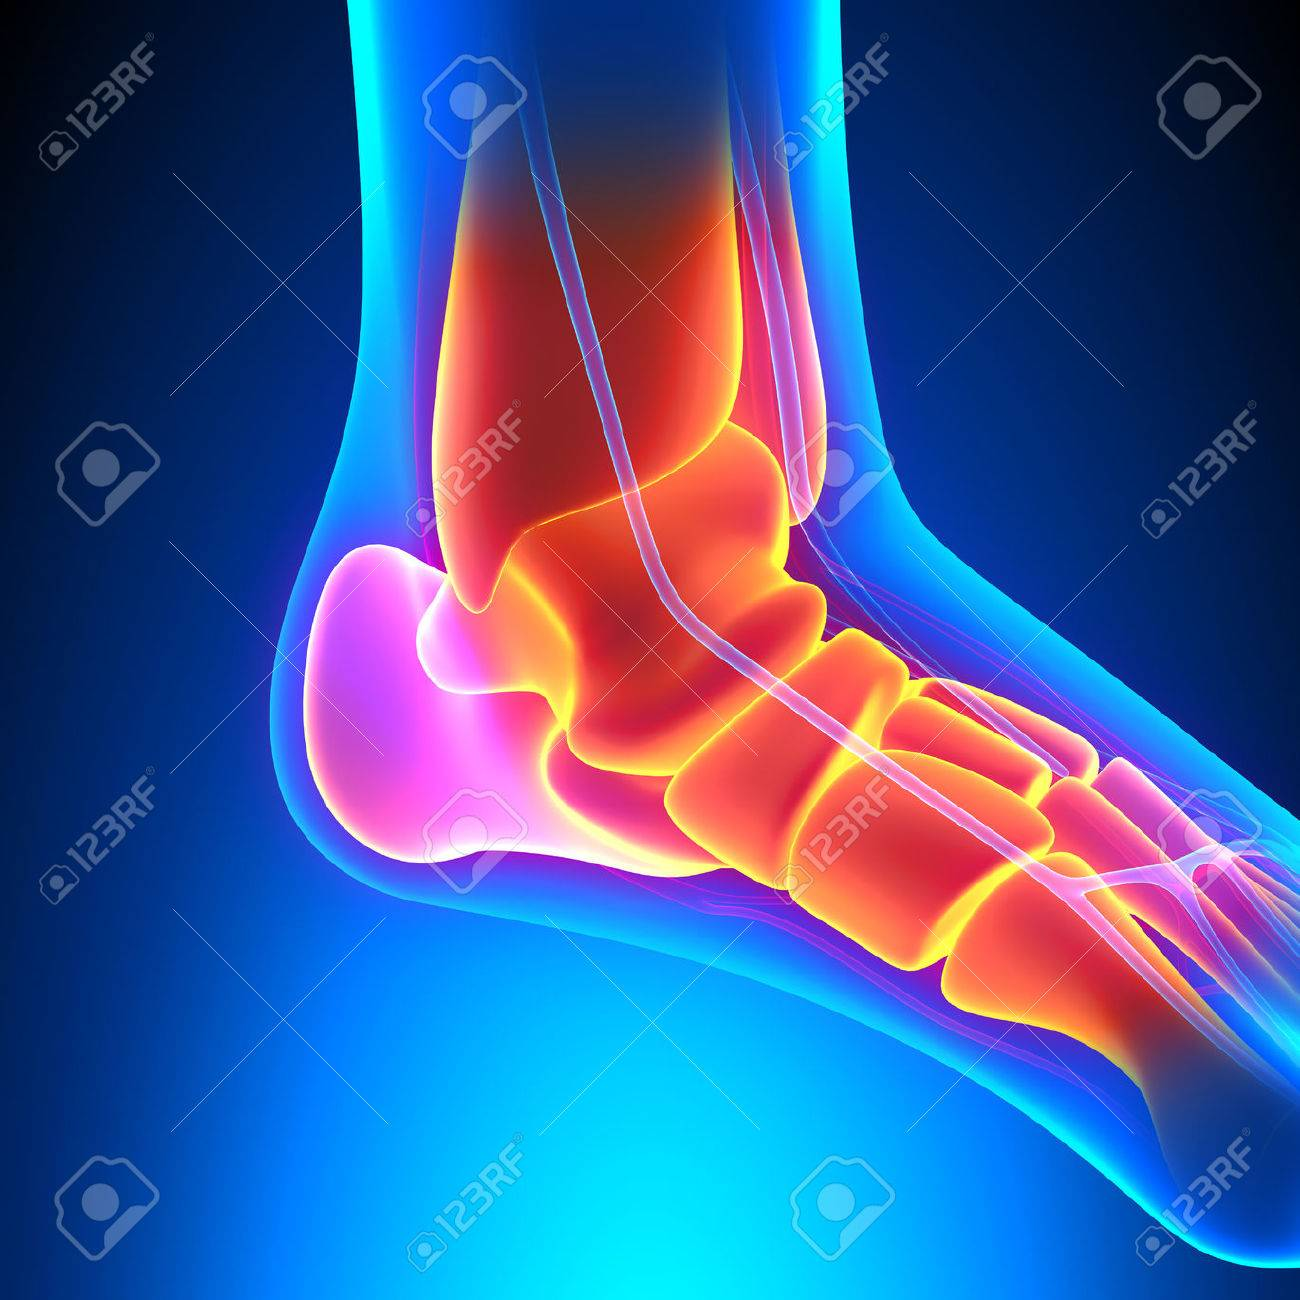 Ankle Bones Anatomy Pain Concept Stock Photo Picture And Royalty